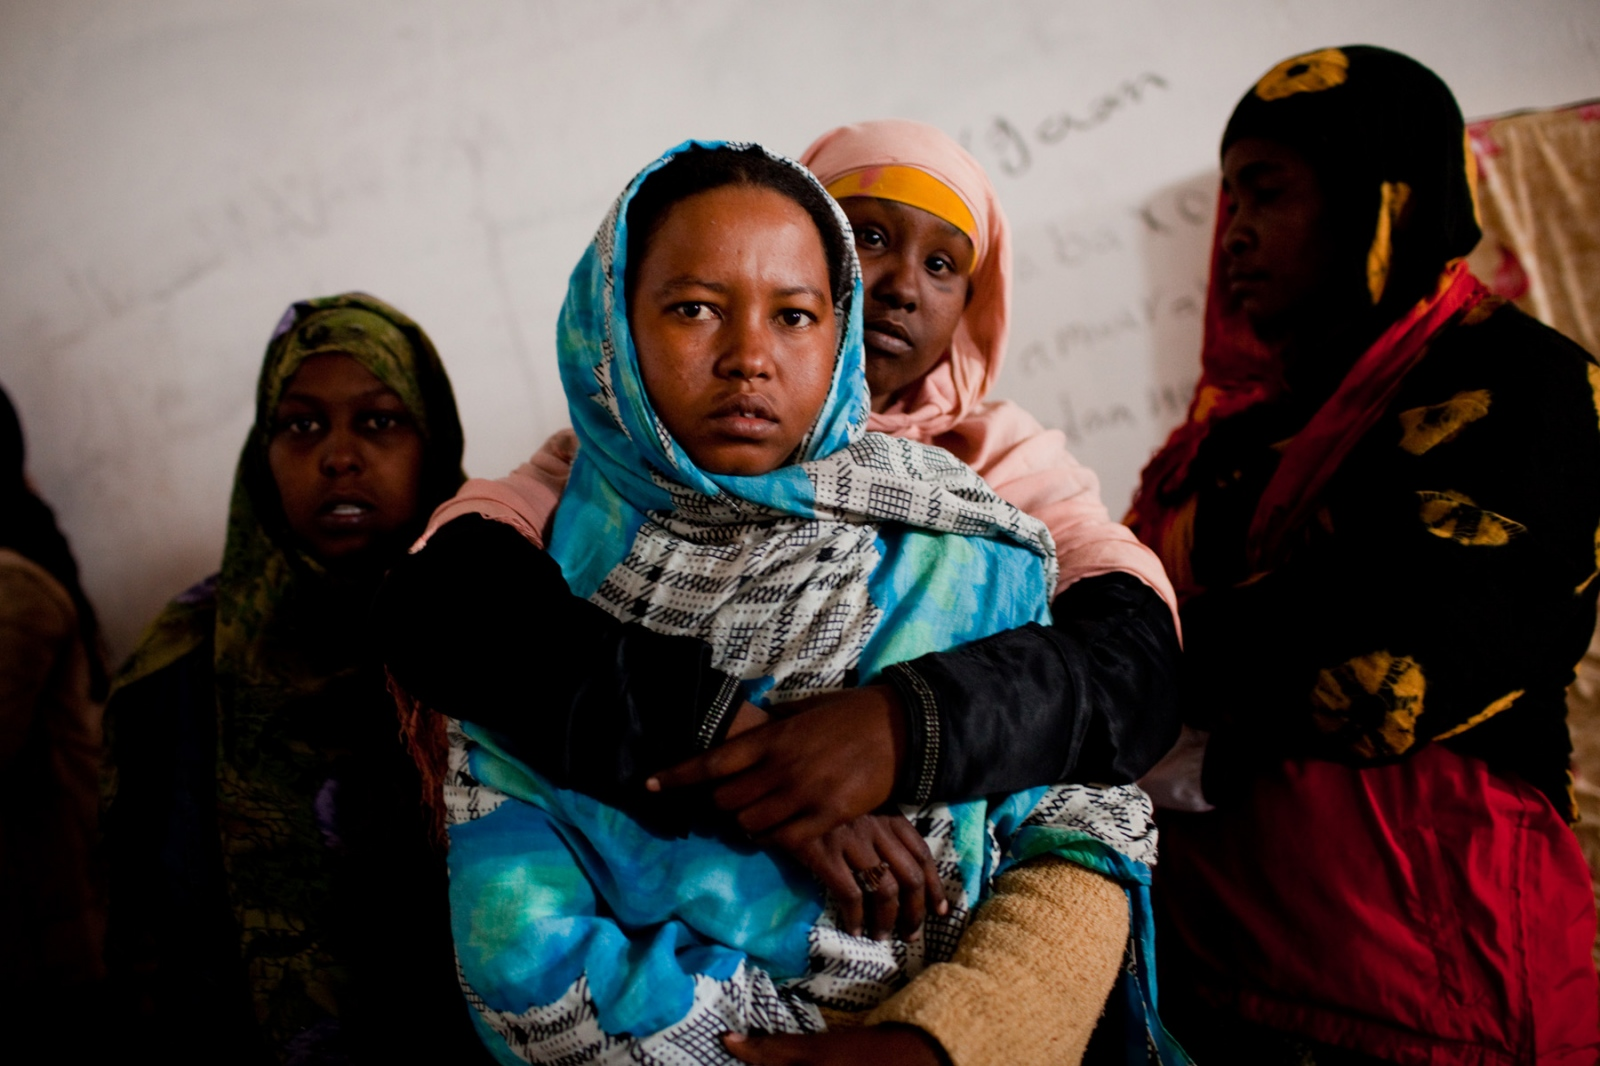 Somali and Eritrean women gather in a room at the Ganfuda detention facility in Benghazi on March 3, 2012. Some have been there for approximately two months after being held in Kufra, southern Libya. Most people paid at least $2000USD to get from their home countries to Kufra, crossing the Chad-Libya border illegally to seek work in Libya, or to advance their journey on to Europe.